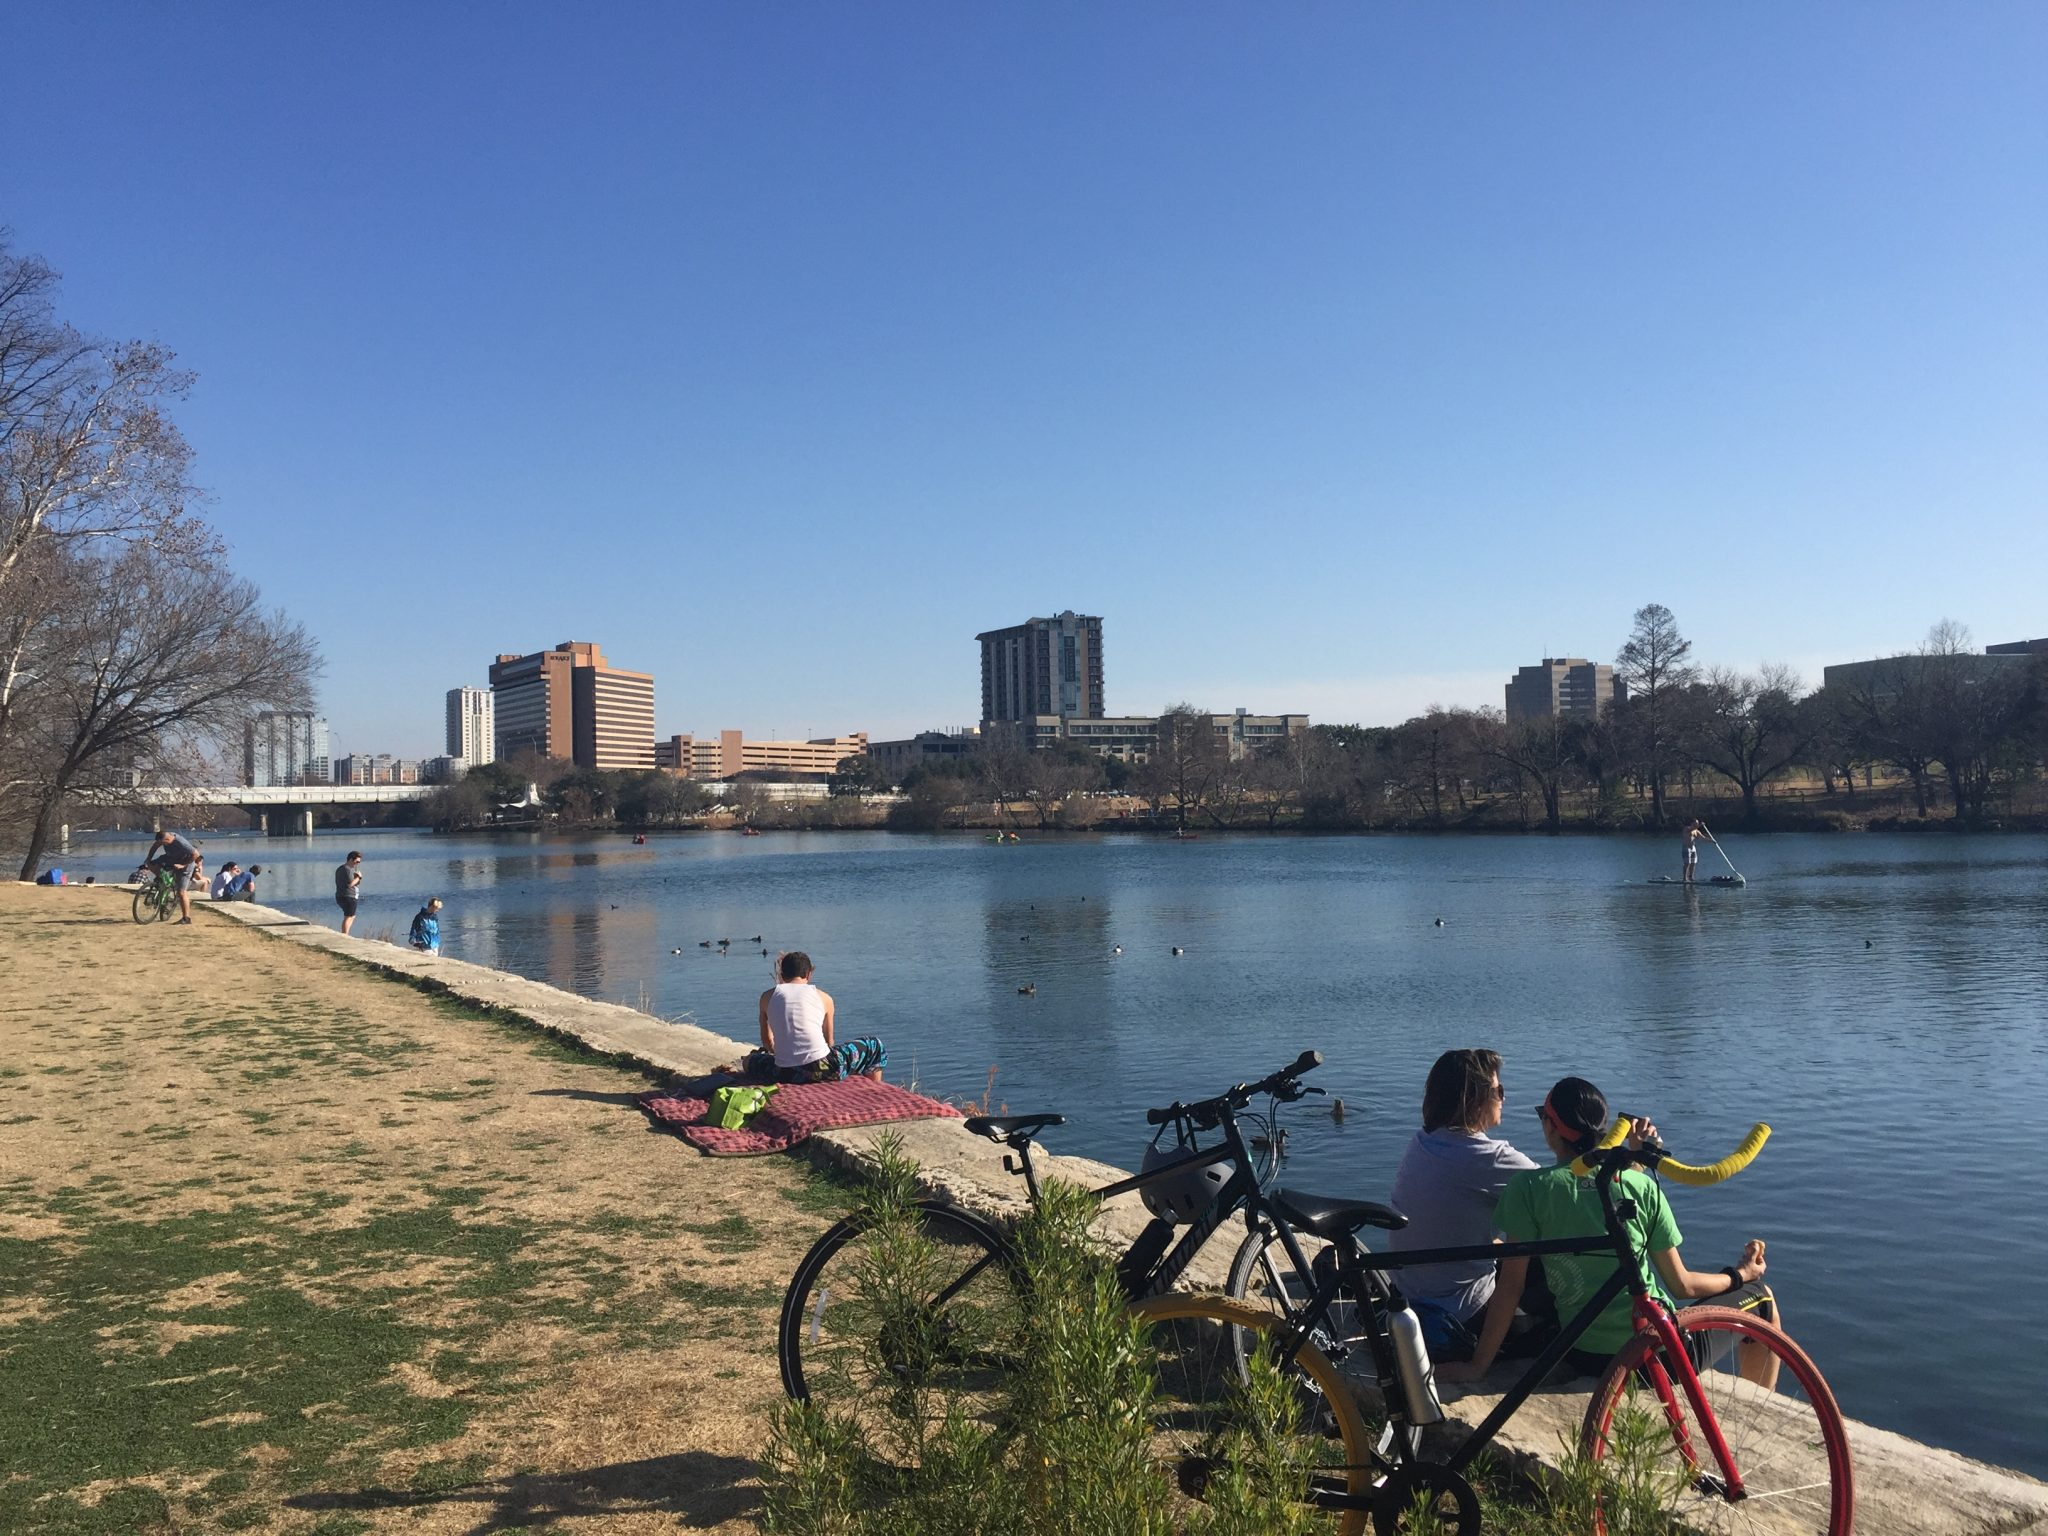 Fun things to do in Austin, Texas include enjoying its downtown waterfront hiking trail.